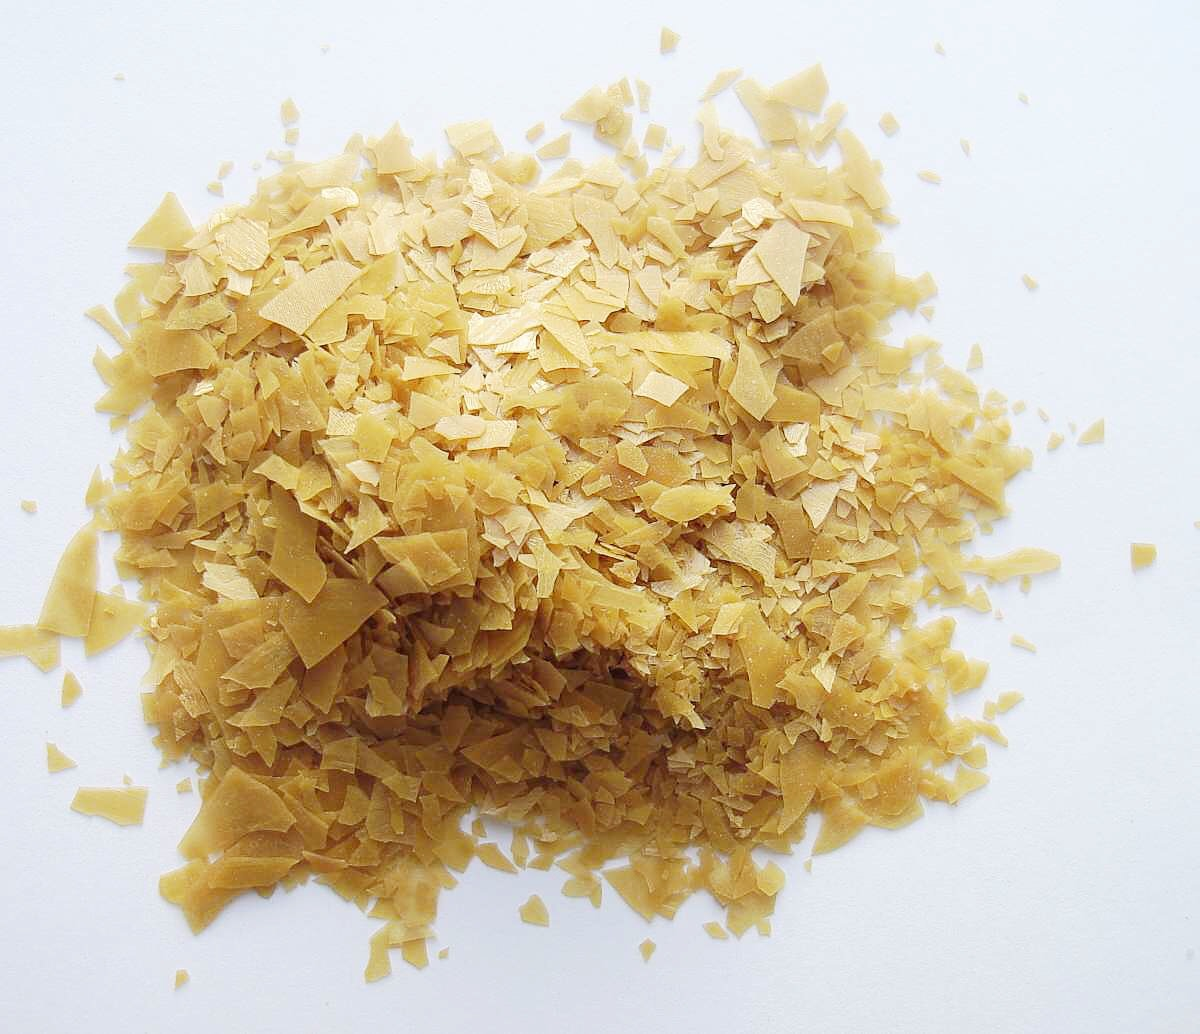 Flakes of carnauba wax